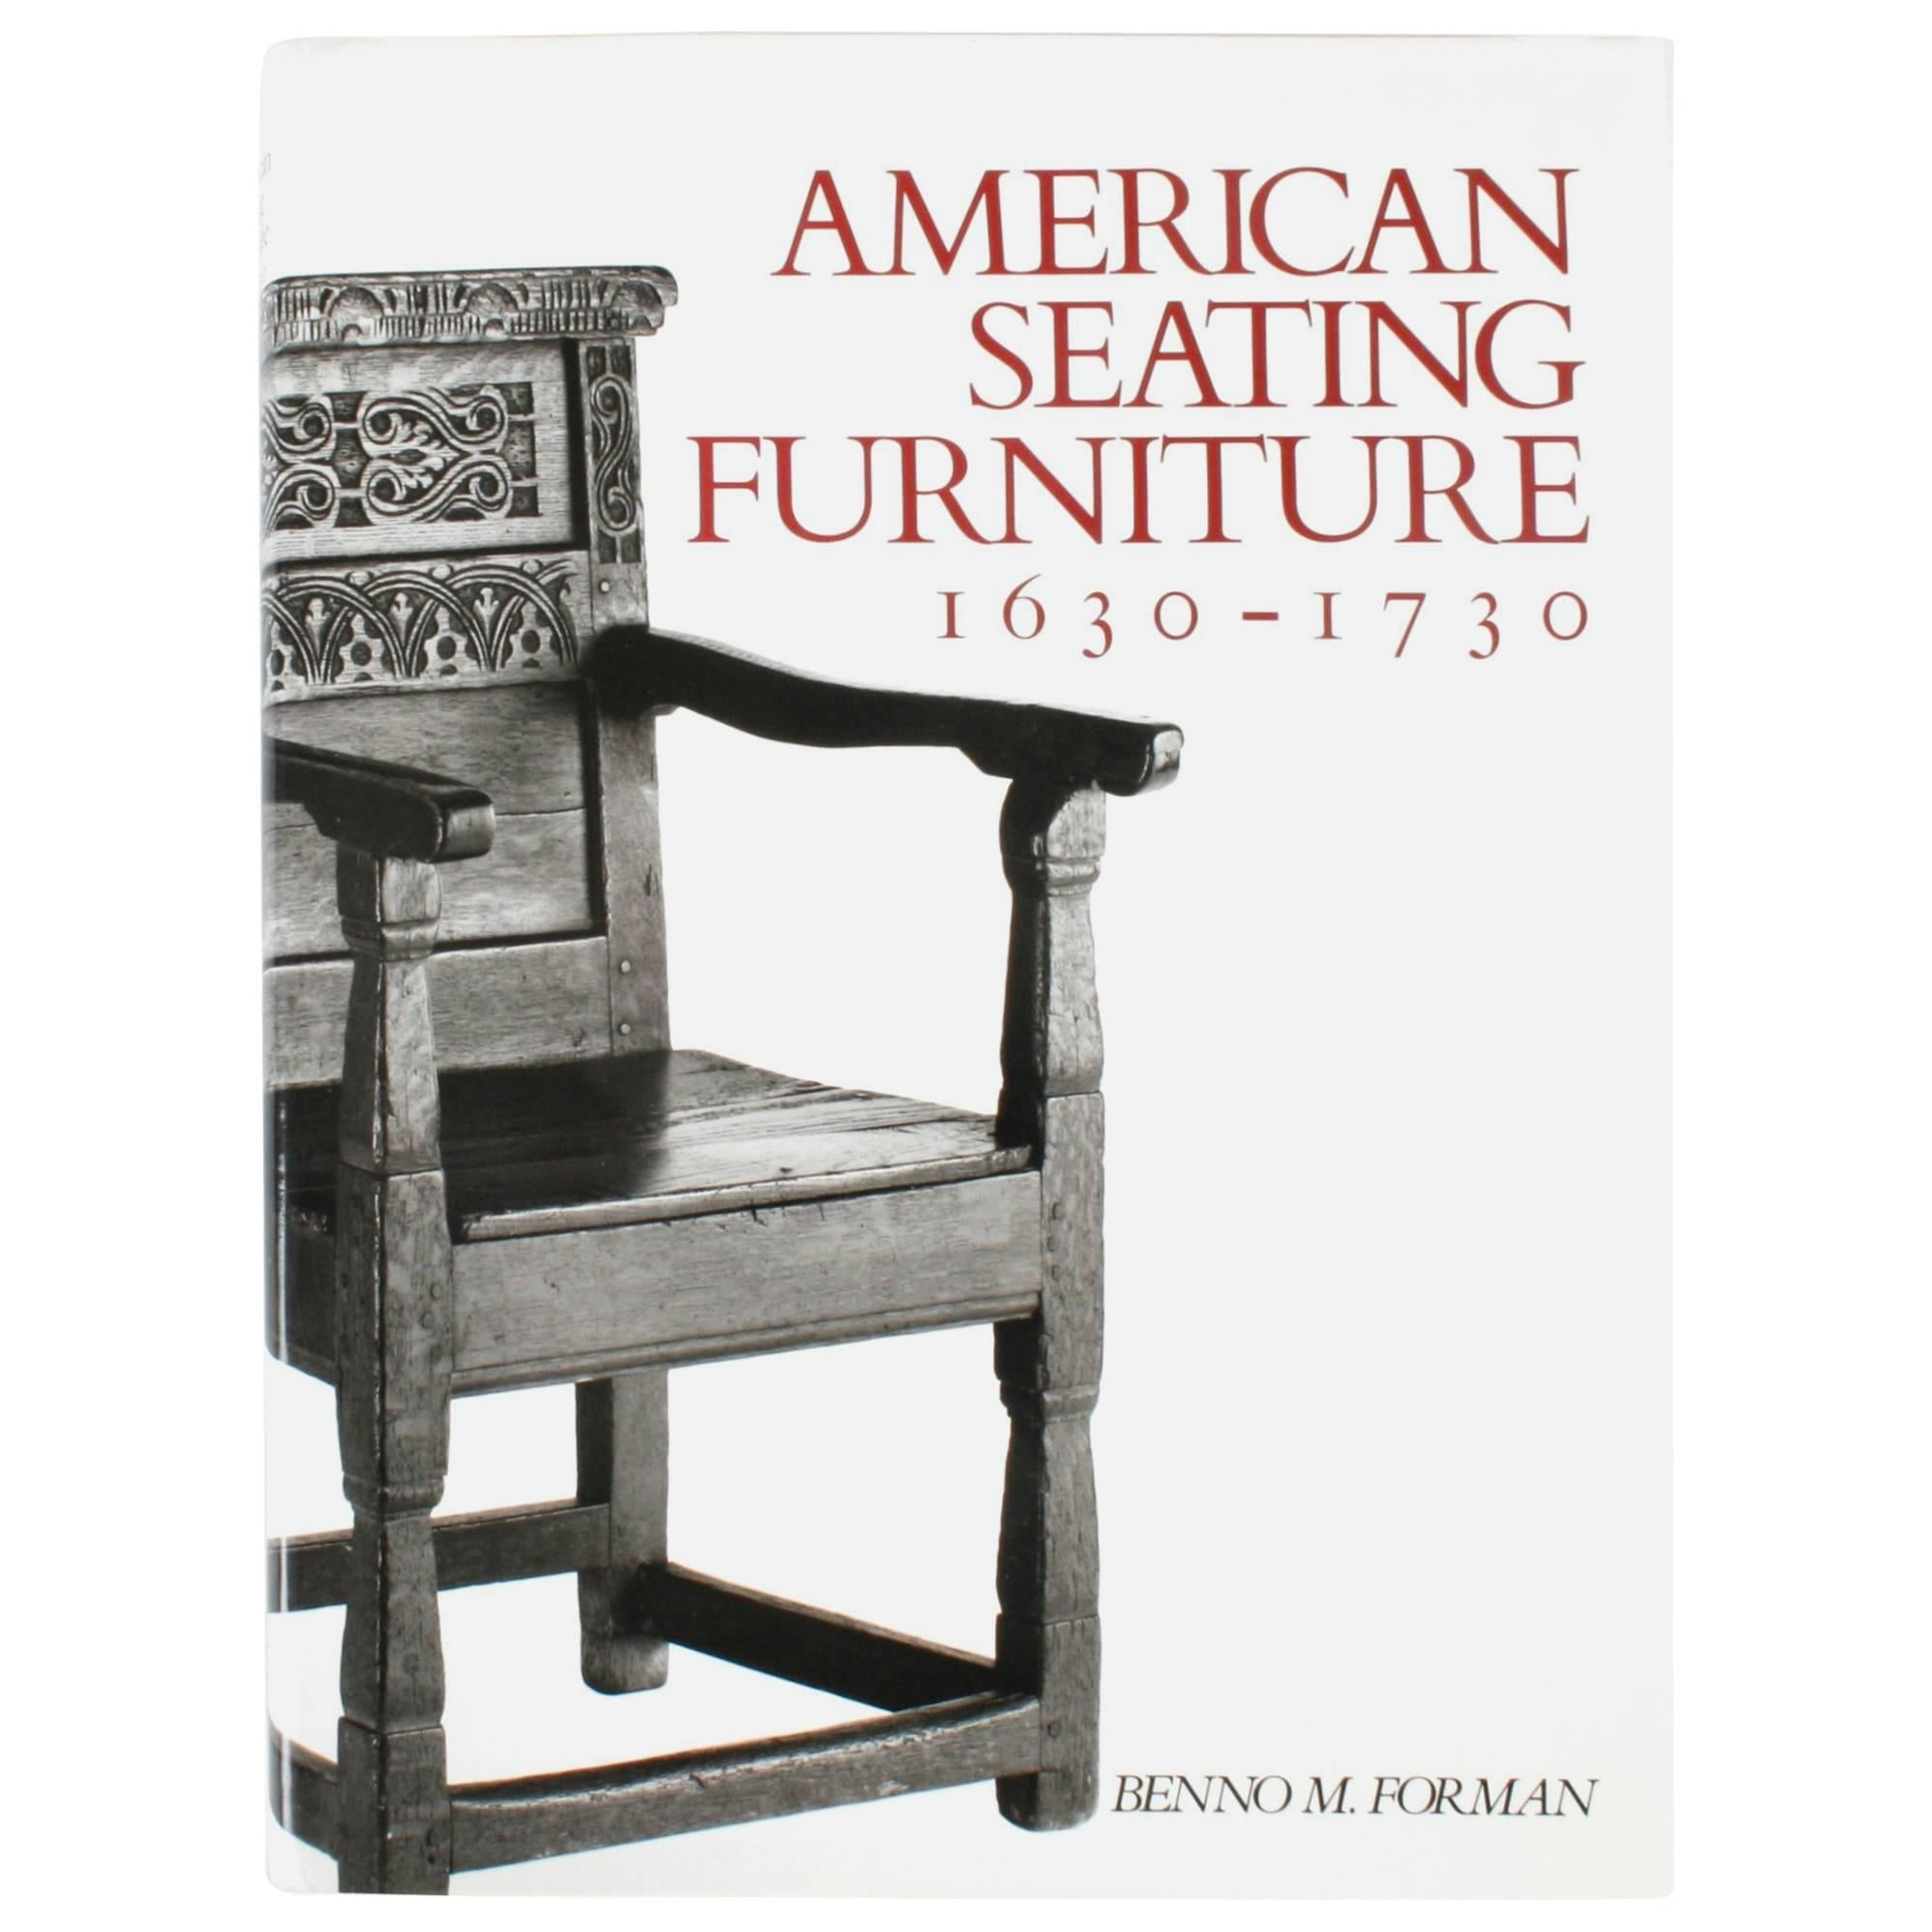 American Seating Furniture 1630-1730, First Edition